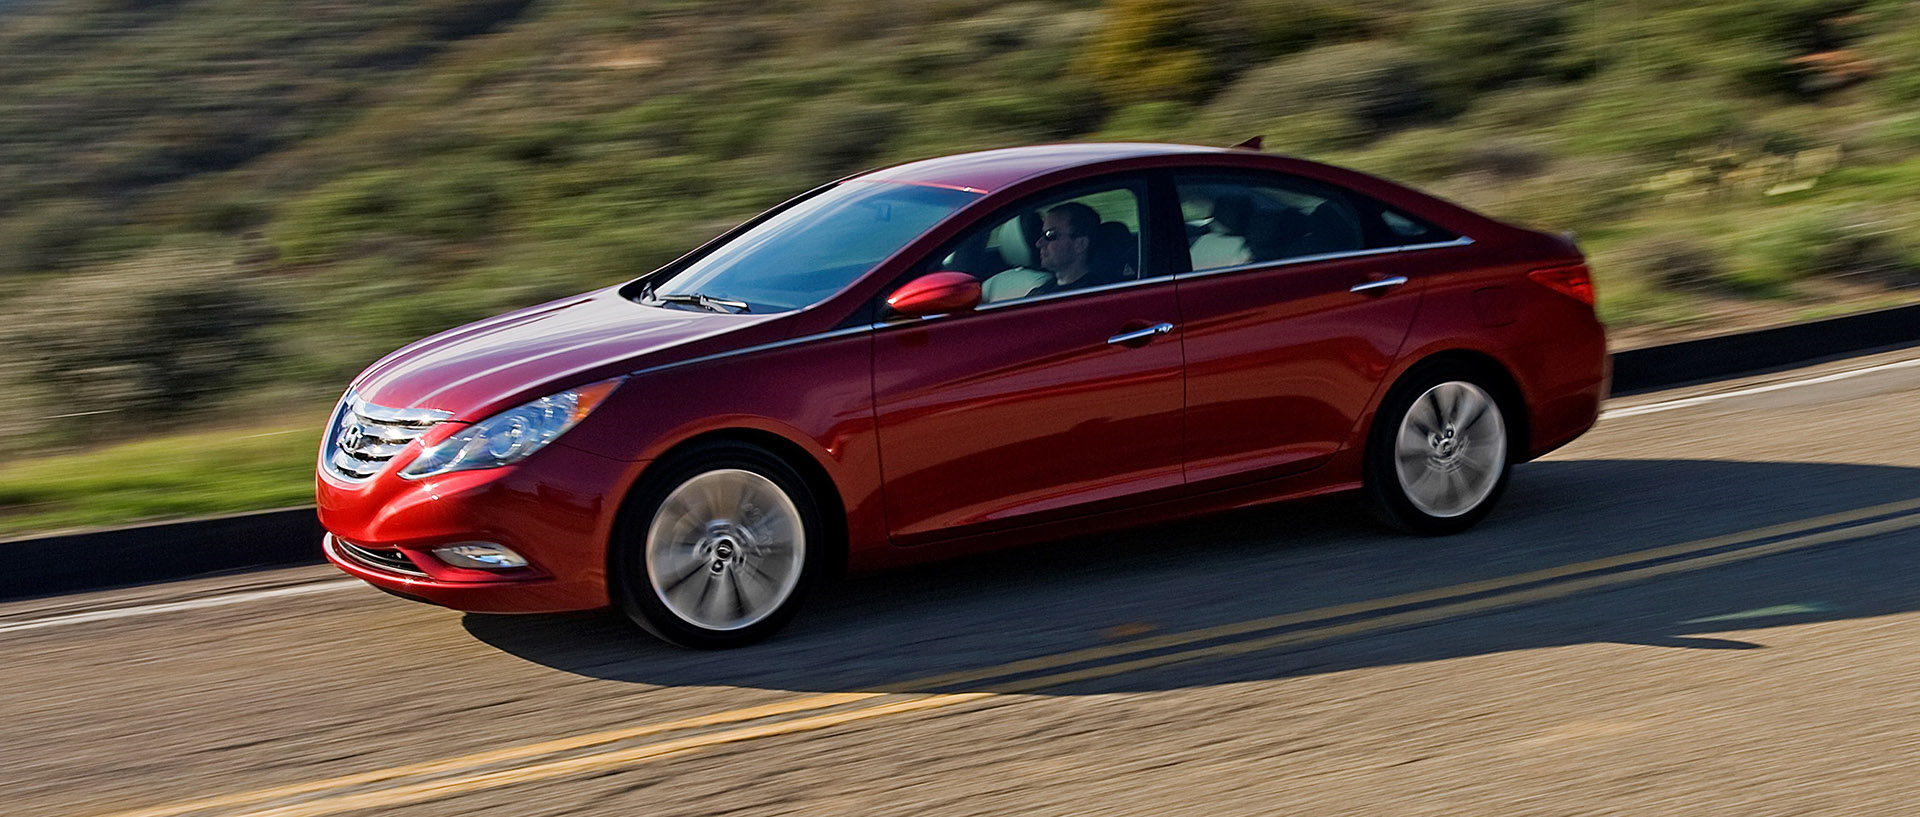 Hyundai Sonata Engine Failures Prompt Recall